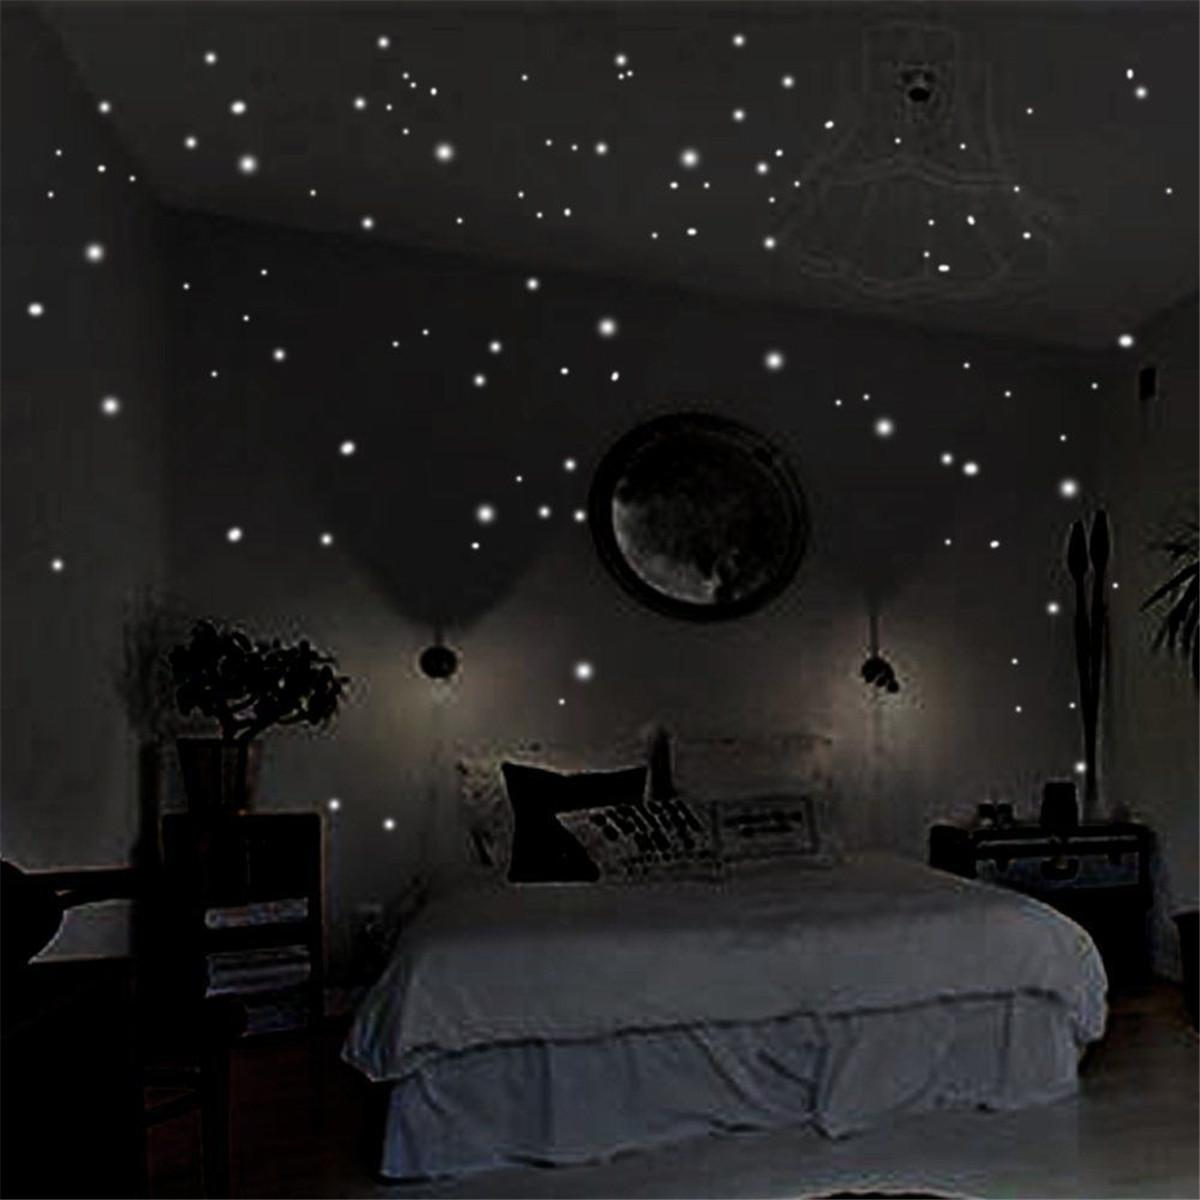 Glow In The Dark Wall Stickers Round Dots Luminous Stickers Home Bedroom  Ceiling Diy Decoration Art Wall Decals Murals Shop Wall Decals Space Wall  Decals ...